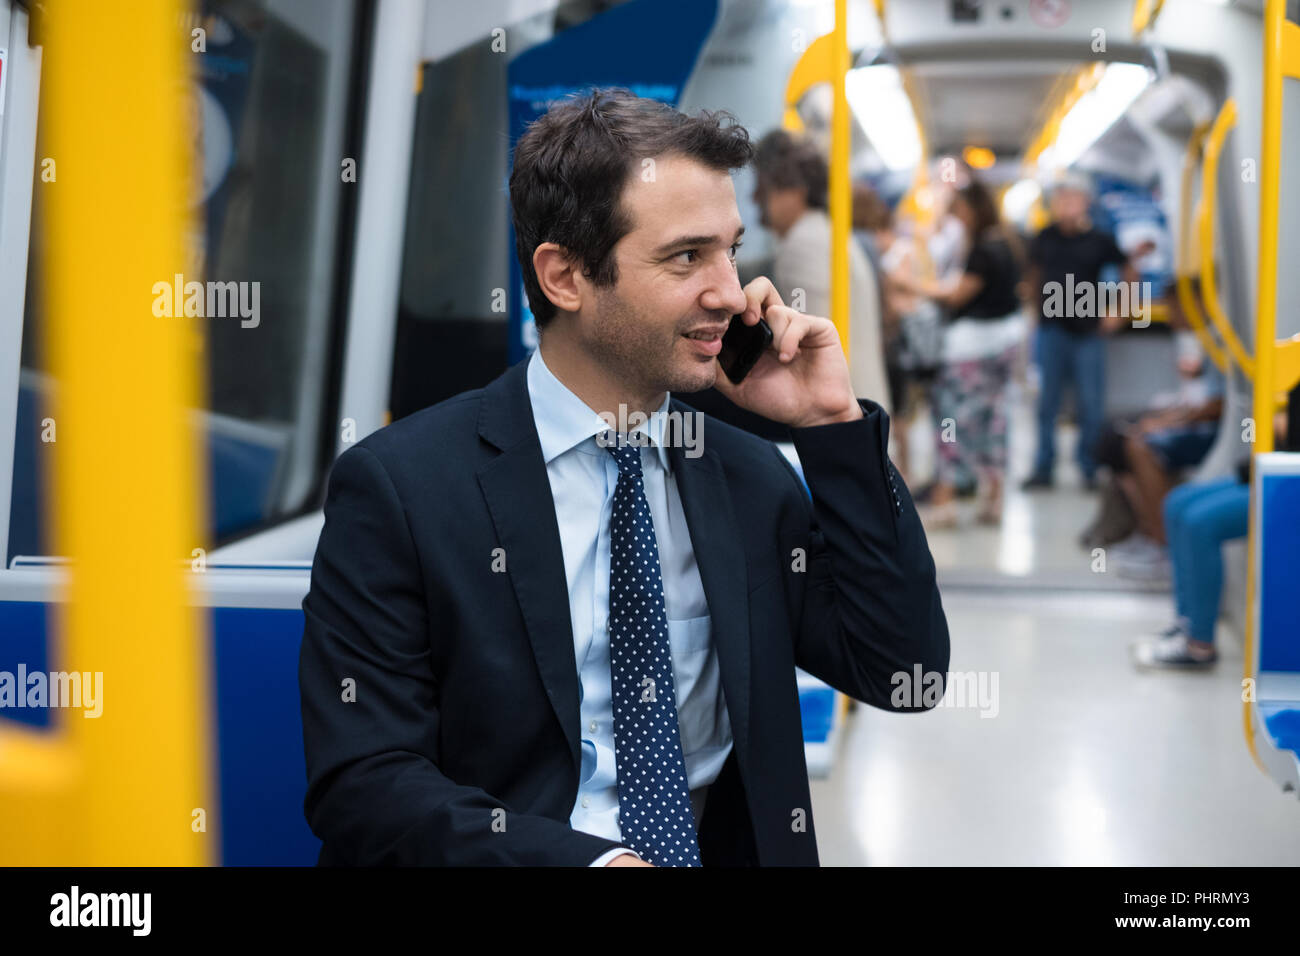 Portrait of businessman talking on his mobile phone while is going to work - Stock Image